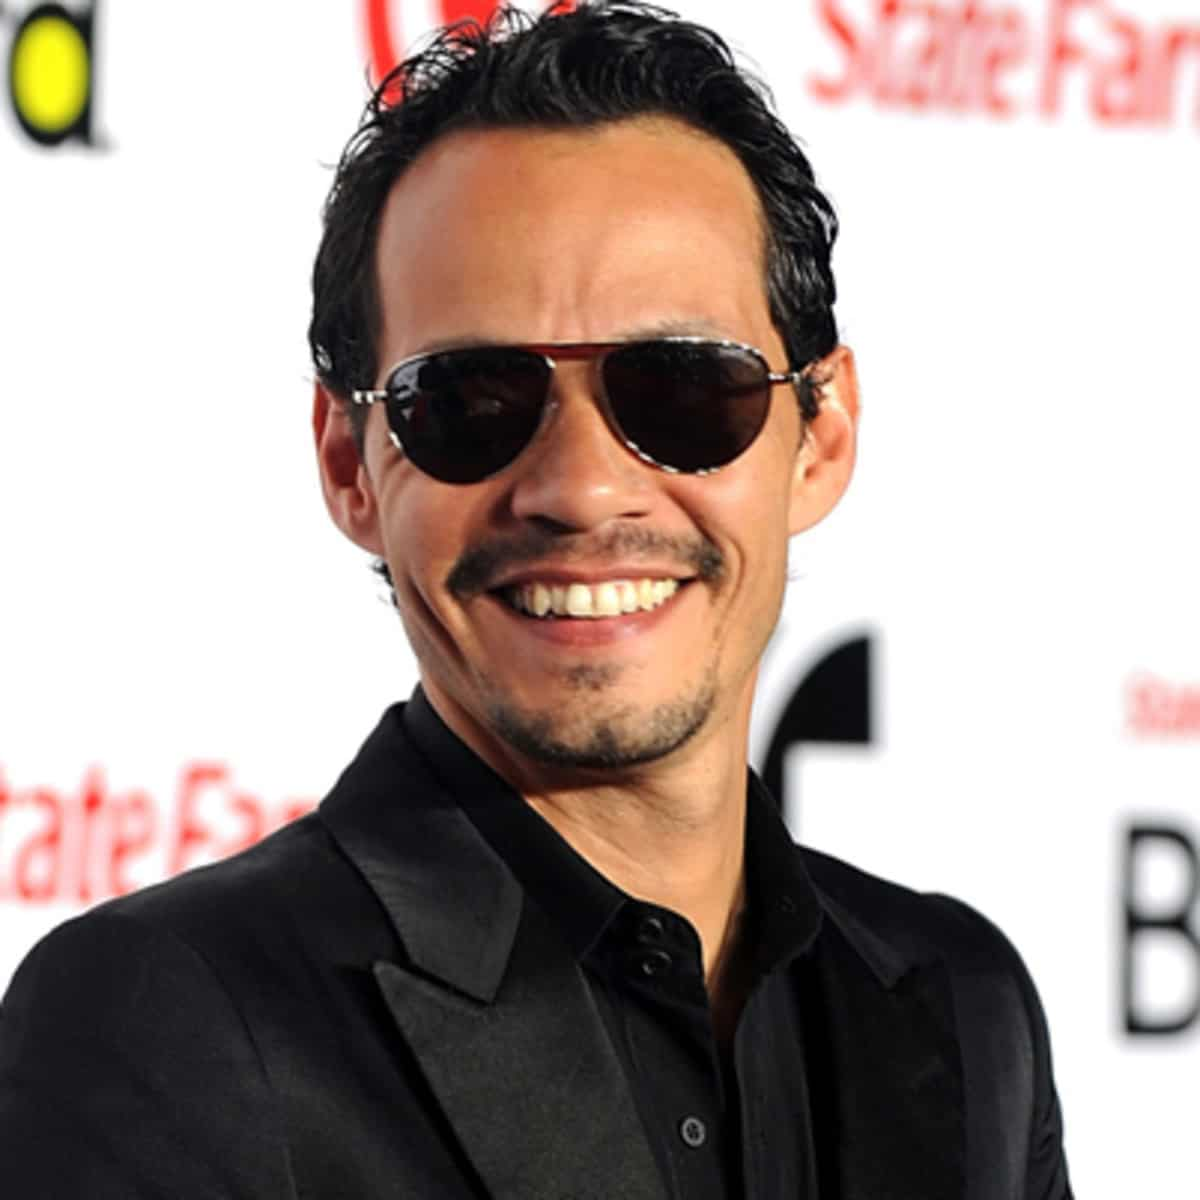 Marc Anthony American Singer-songwriter, Actor, Producer